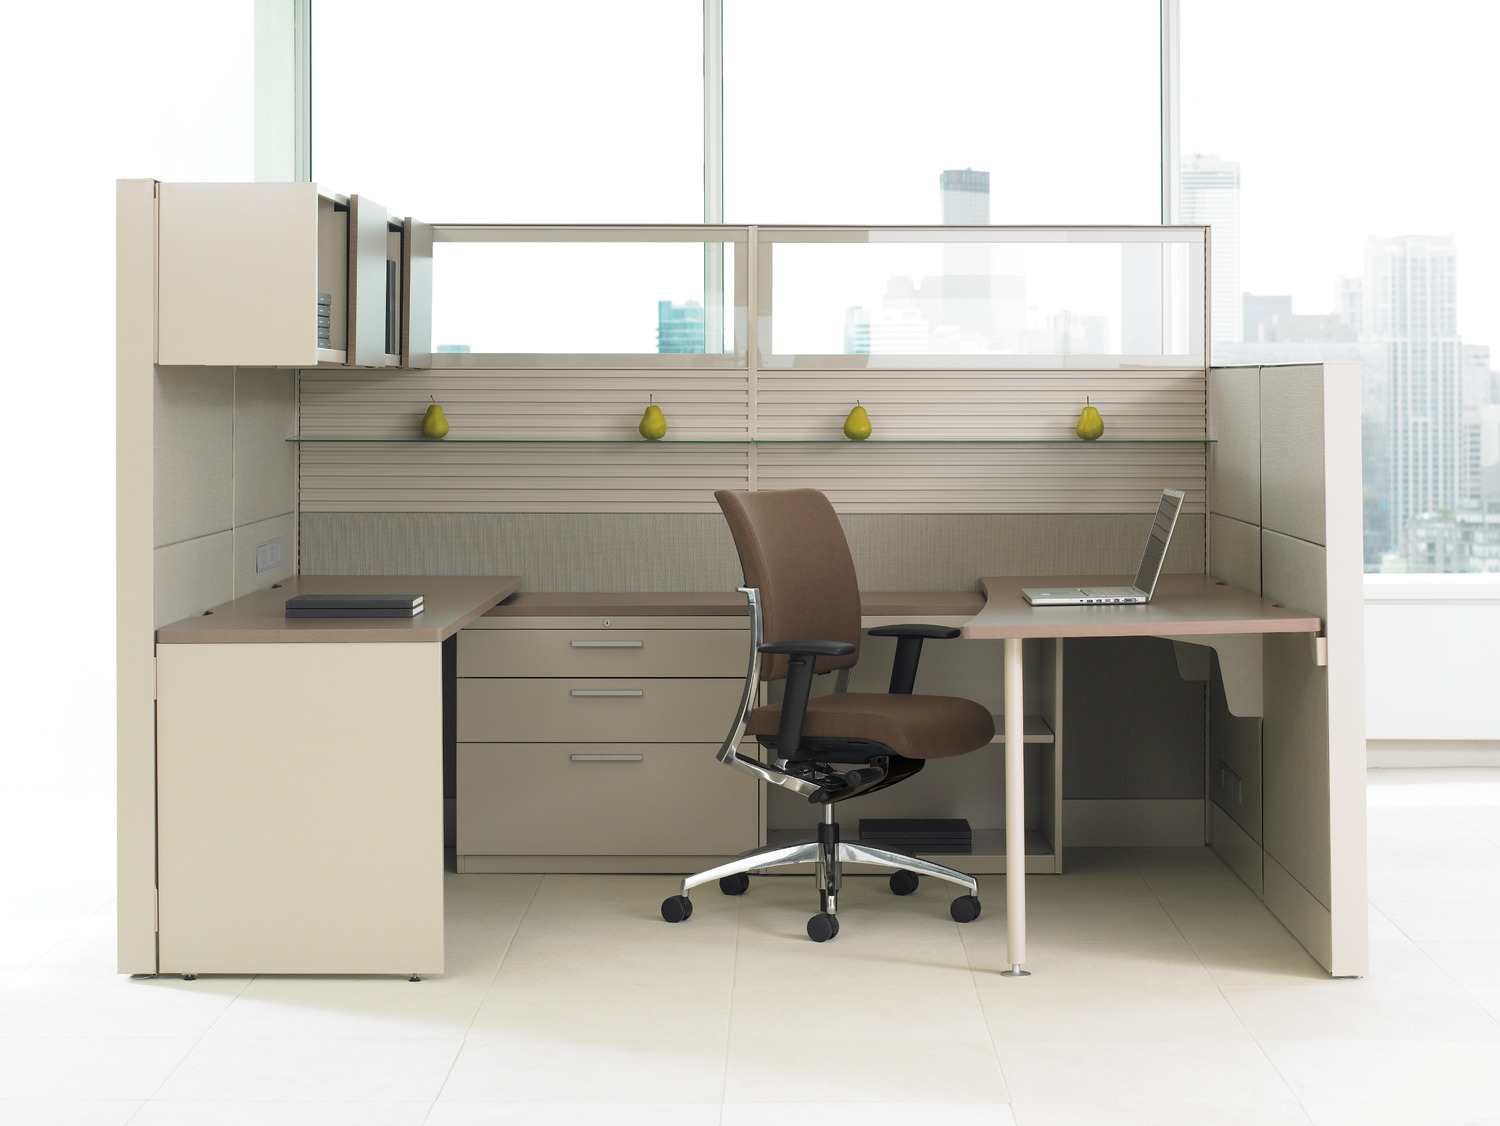 New Used Office Furniture Knoxville Tn Works Llc